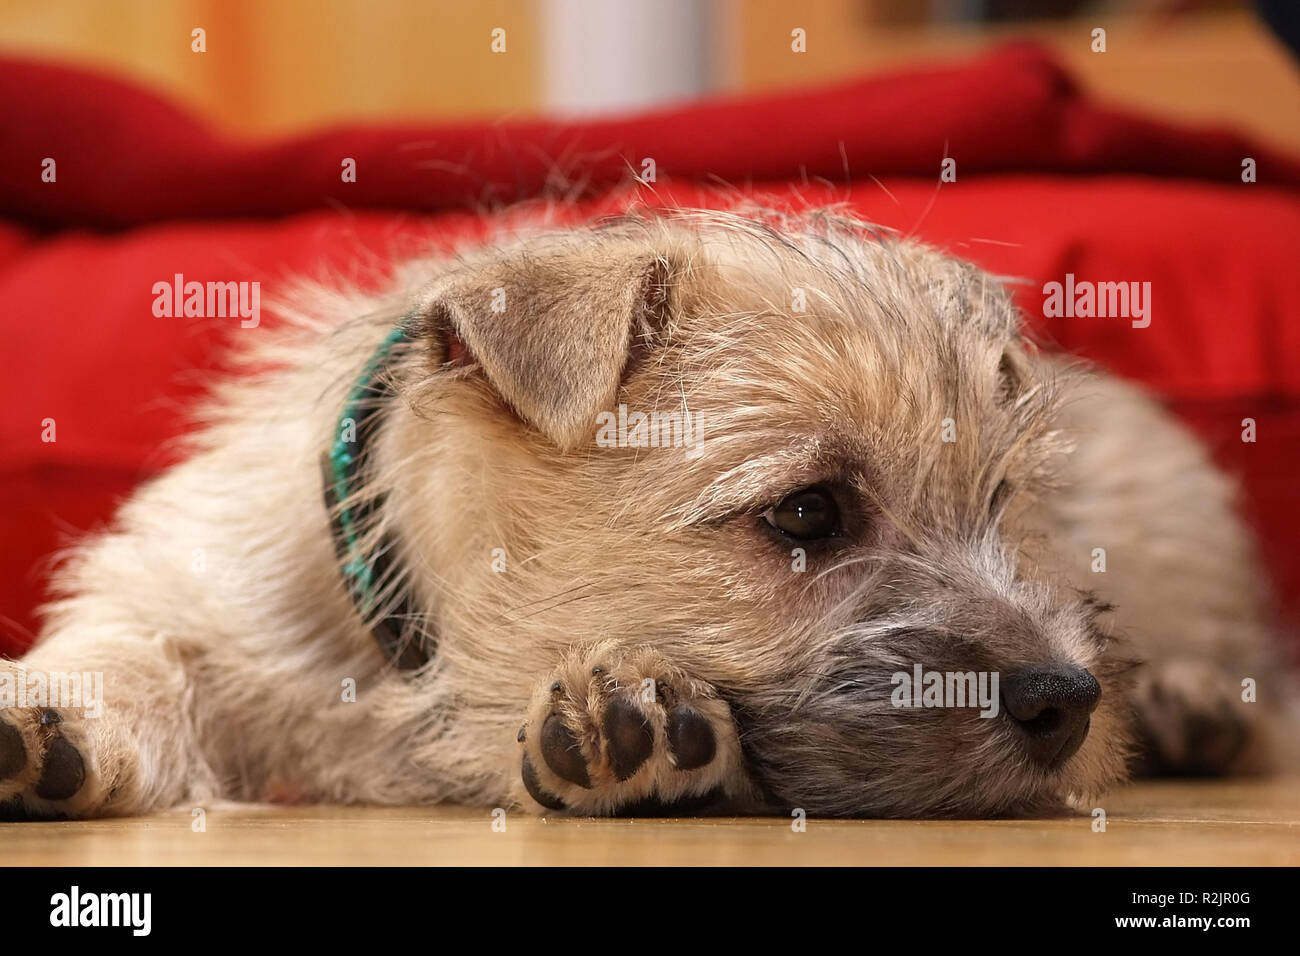 our new cairn terrier baby ii - Stock Image